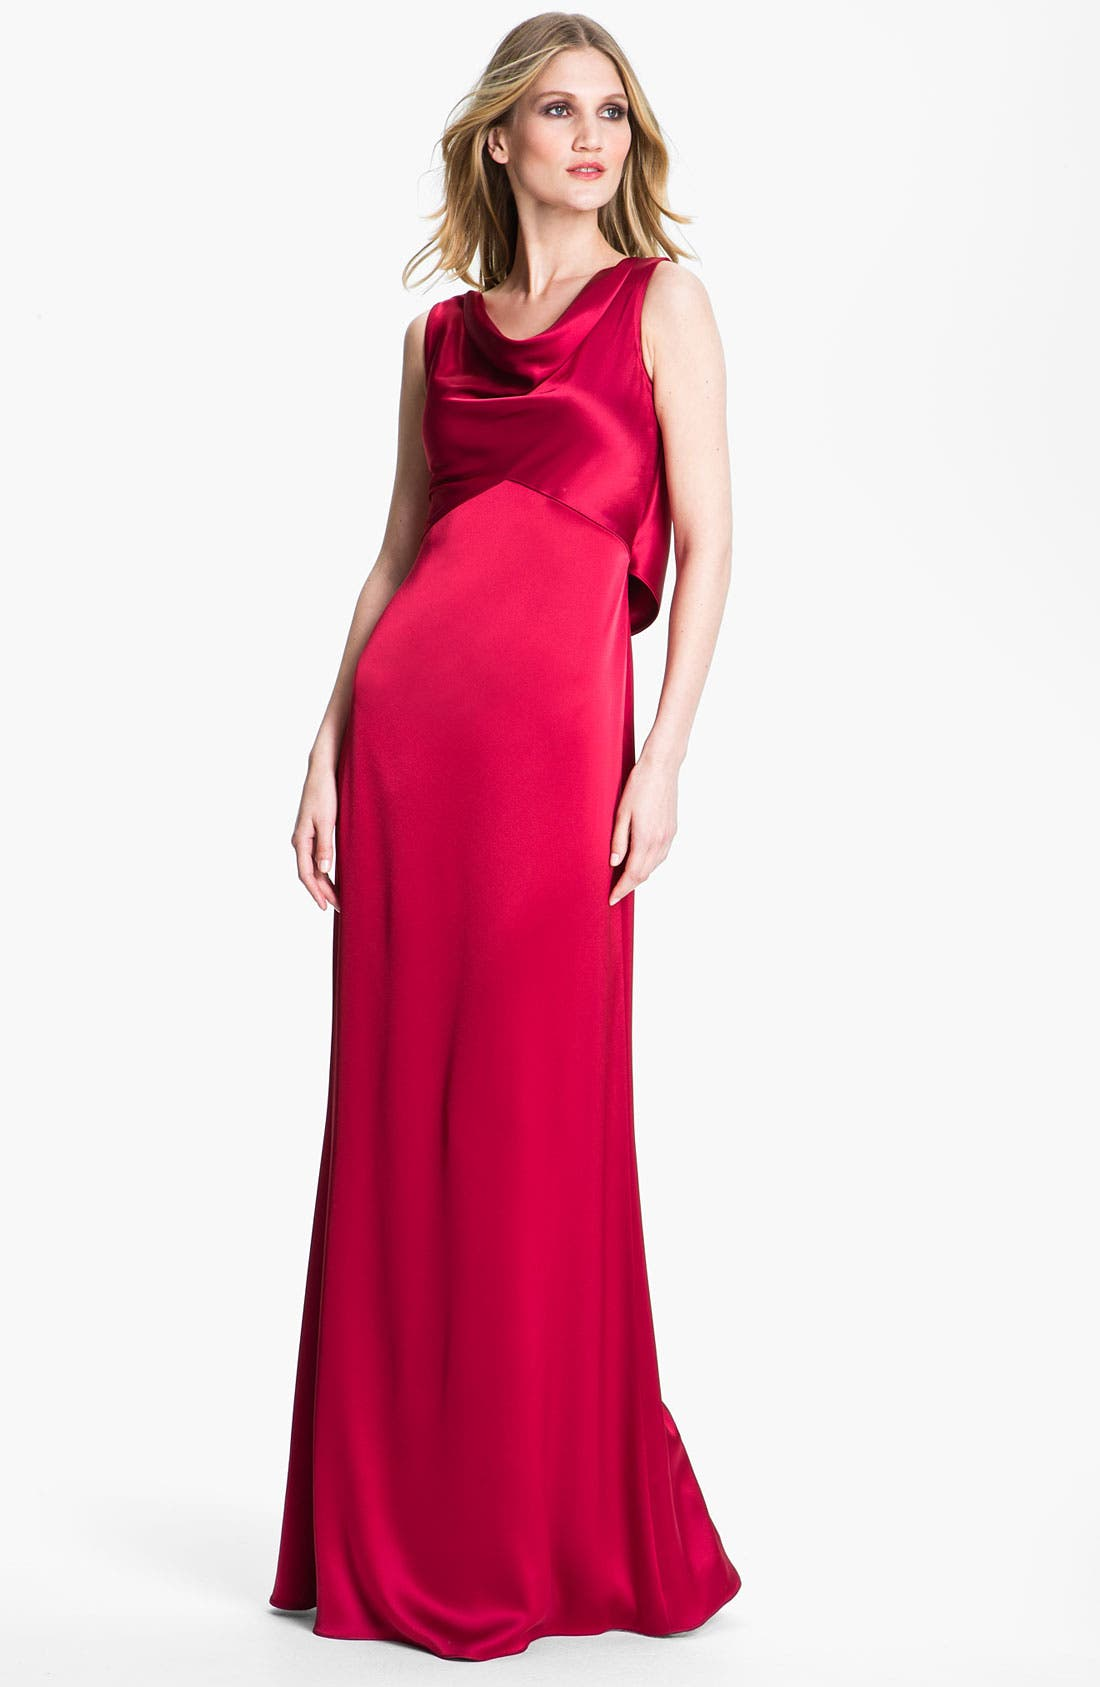 Main Image - St. John Collection Liquid Satin Gown